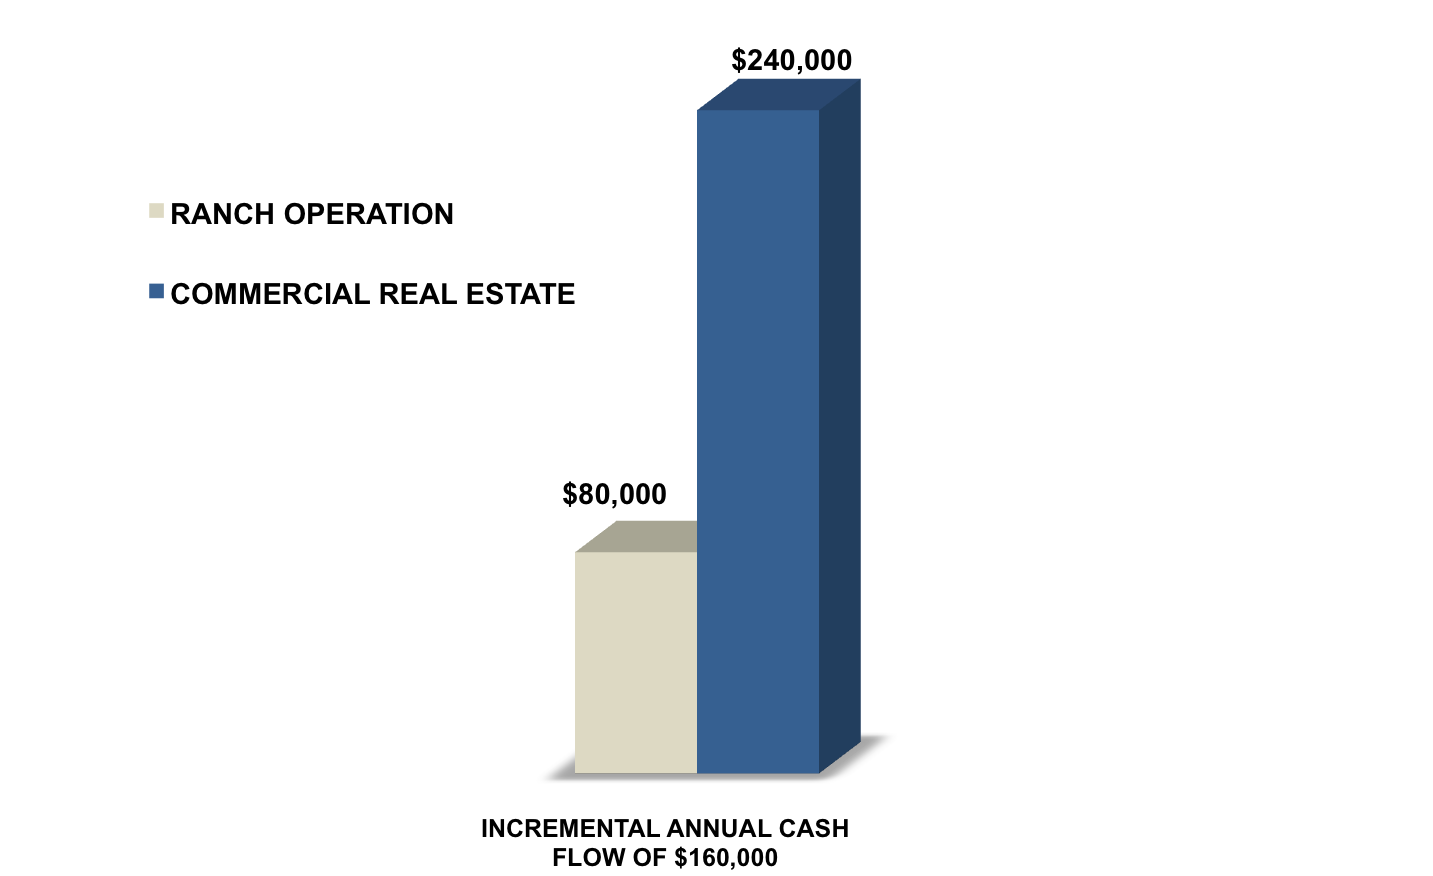 incremental cash flow of commercial real estate vs. a ranch operation